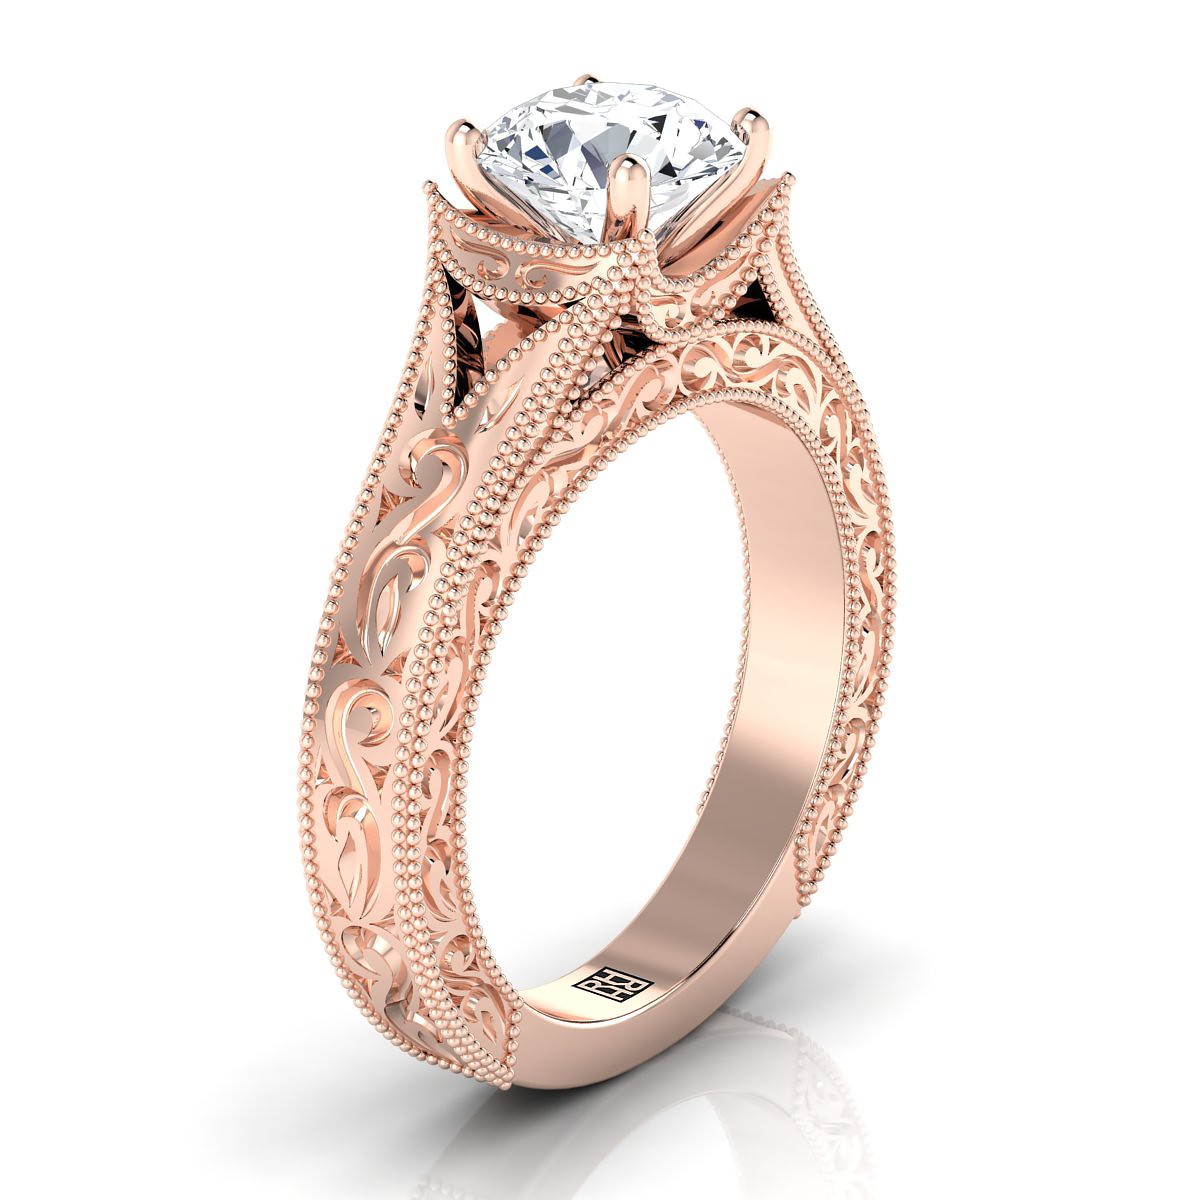 Round Brilliant Antique Inspired Engraved Diamond Engagement Ring With Millgrain Finish In 14k Rose Gold